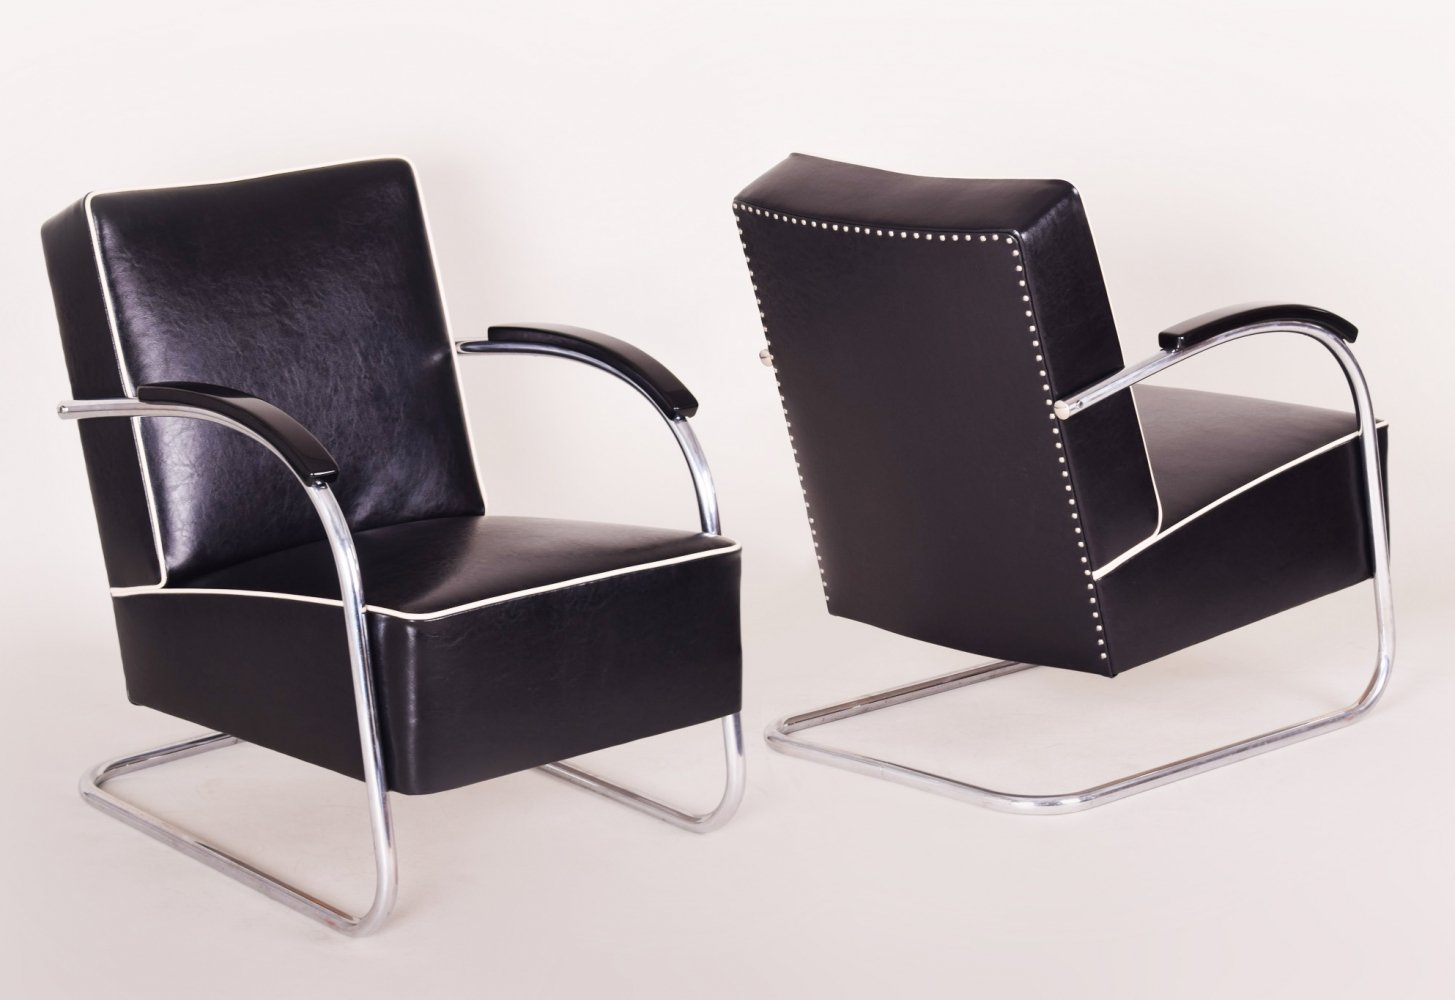 Pair of Black Tubular Steel Cantilever Armchairs by Mücke Melder, 1930s